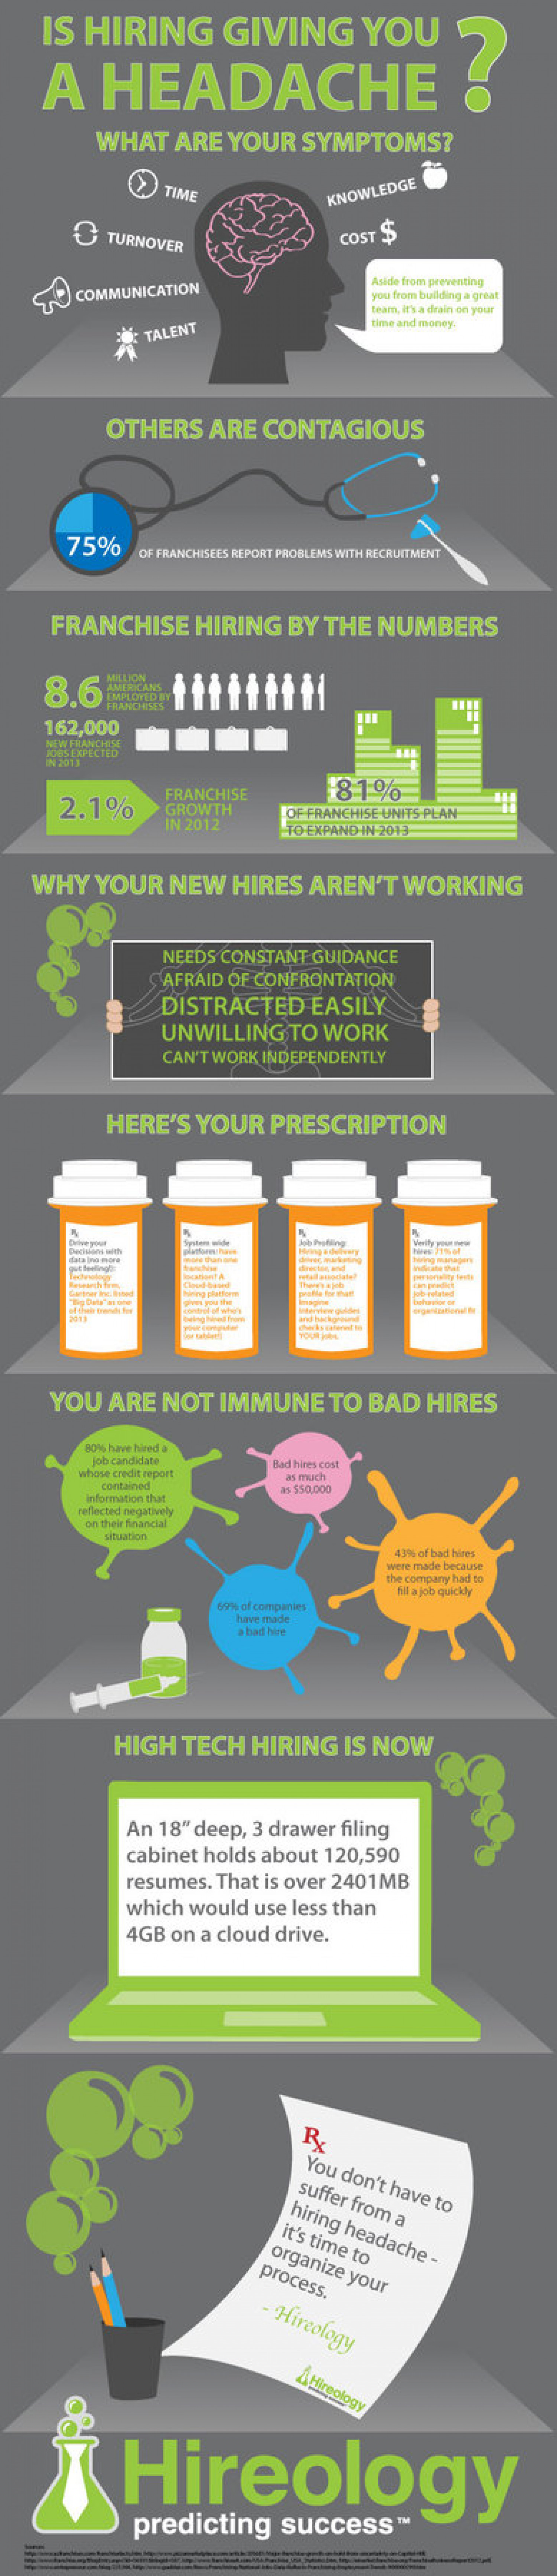 Is Hiring Giving You a Headache? Infographic